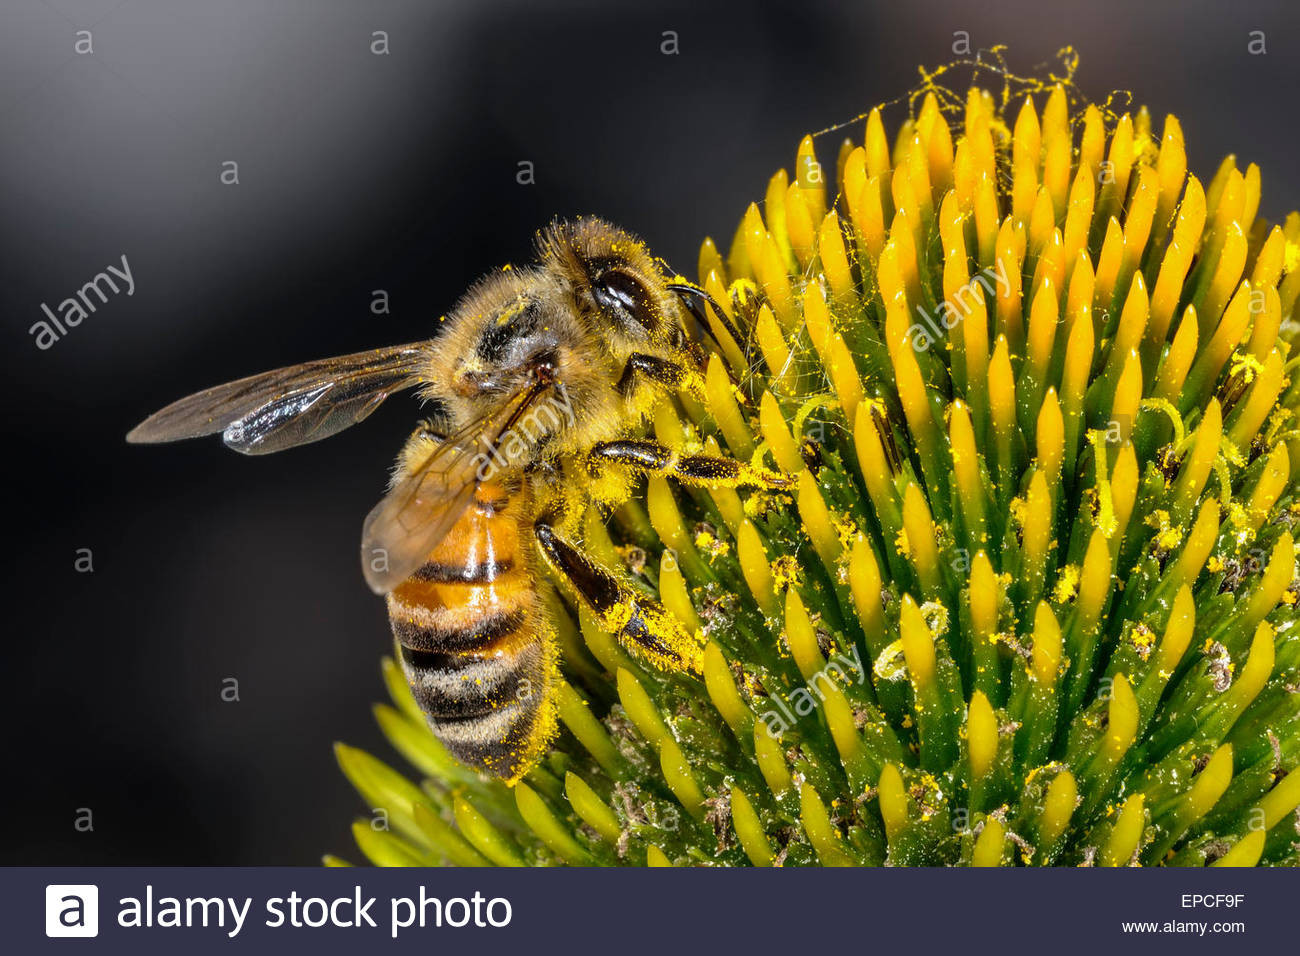 stock photo apis mellifera buckfast honey bee